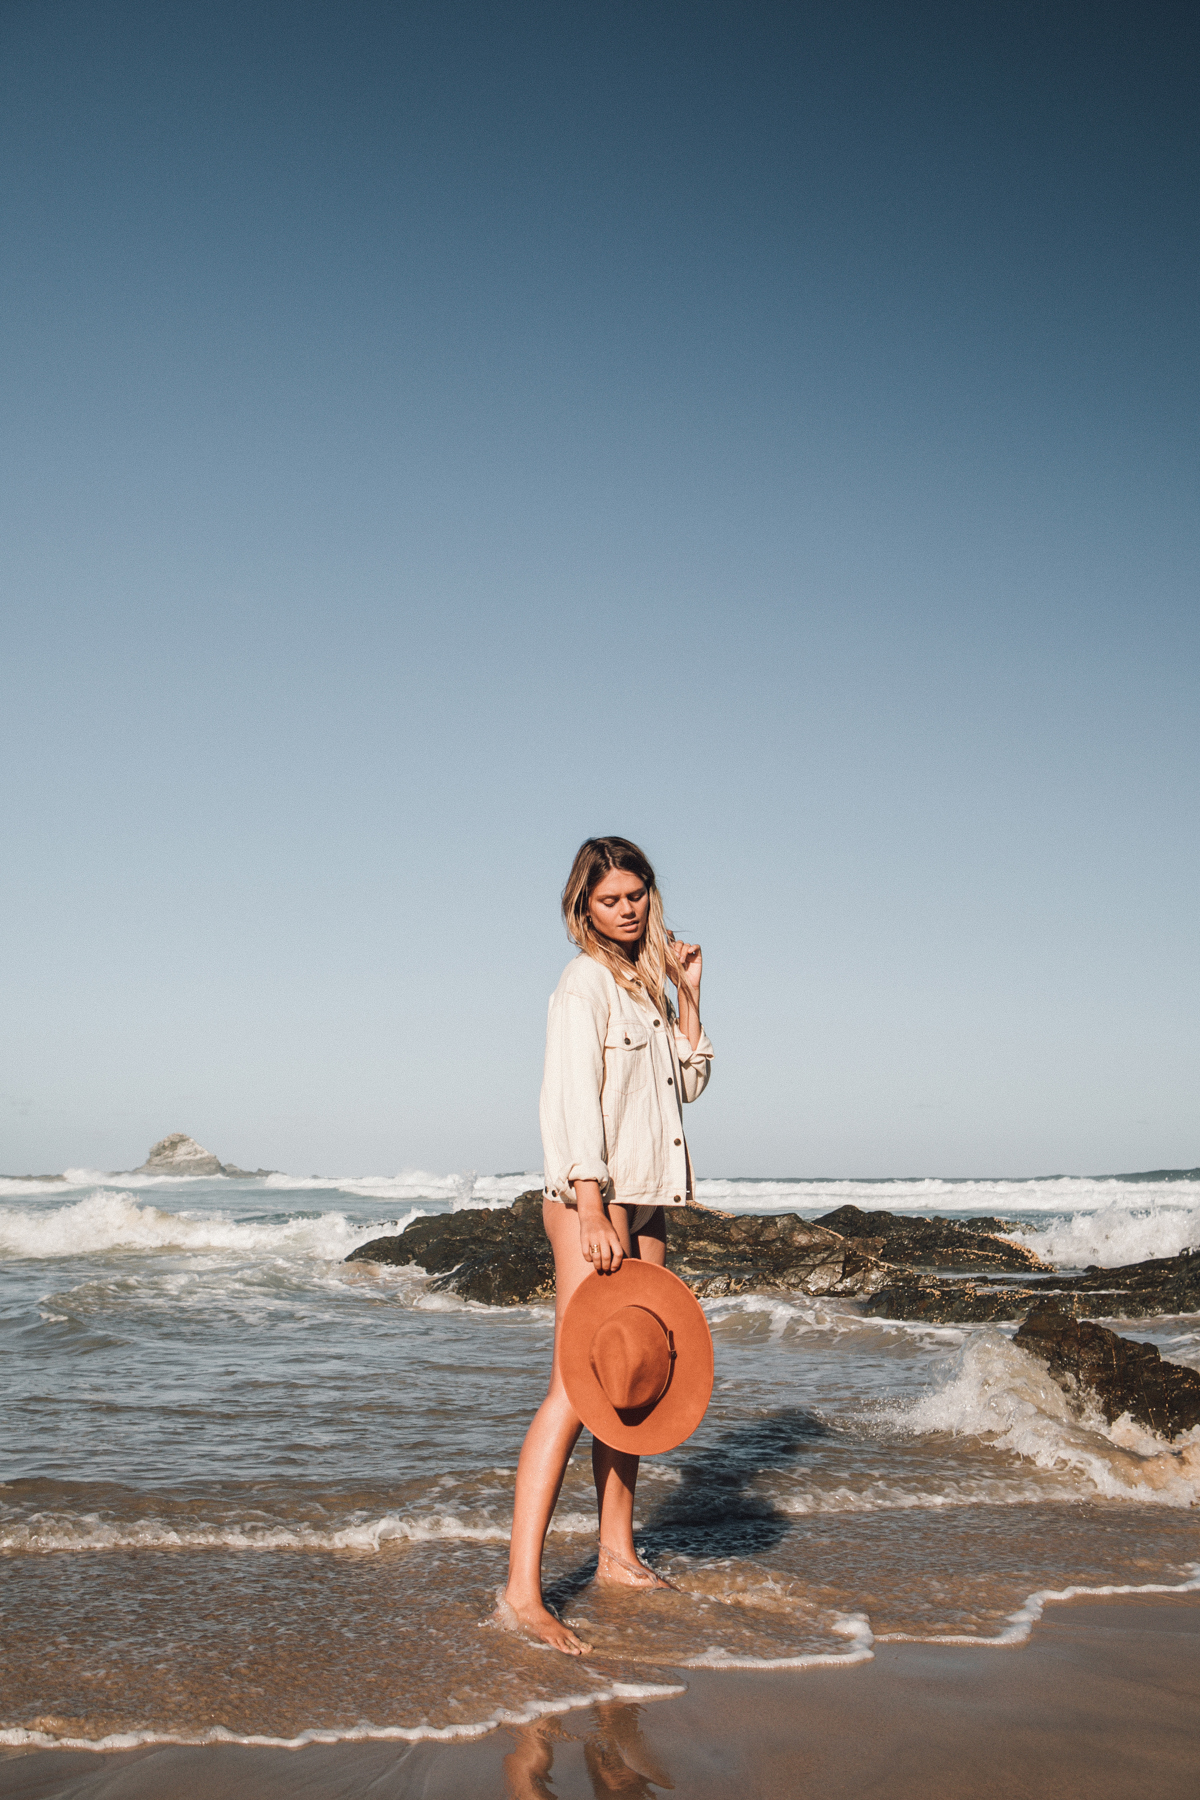 Jacket |  Hemp Temple , Hat |  Fallen Broken Street , Bikini Bottoms |  Peony Swimwear